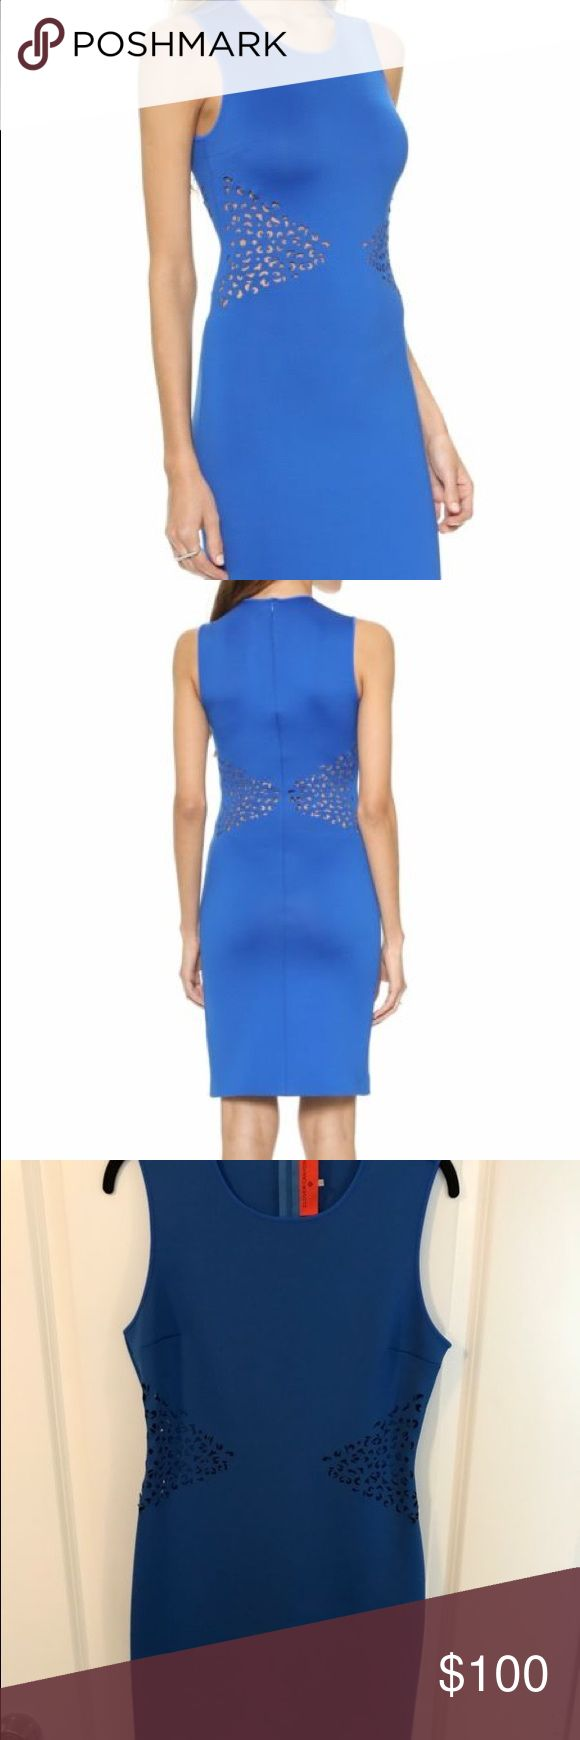 Clover Canyon Laser Cut Dress - Cobalt Laser-cut patterns show peeks of skin on this formfitting Clover Canyon dress. Banding traces the neckline and arm openings. Hidden back zip. Unlined.  Fabric: Neoprene. 90% polyester/10% spandex. Hand wash. Clover Canyon Dresses Mini